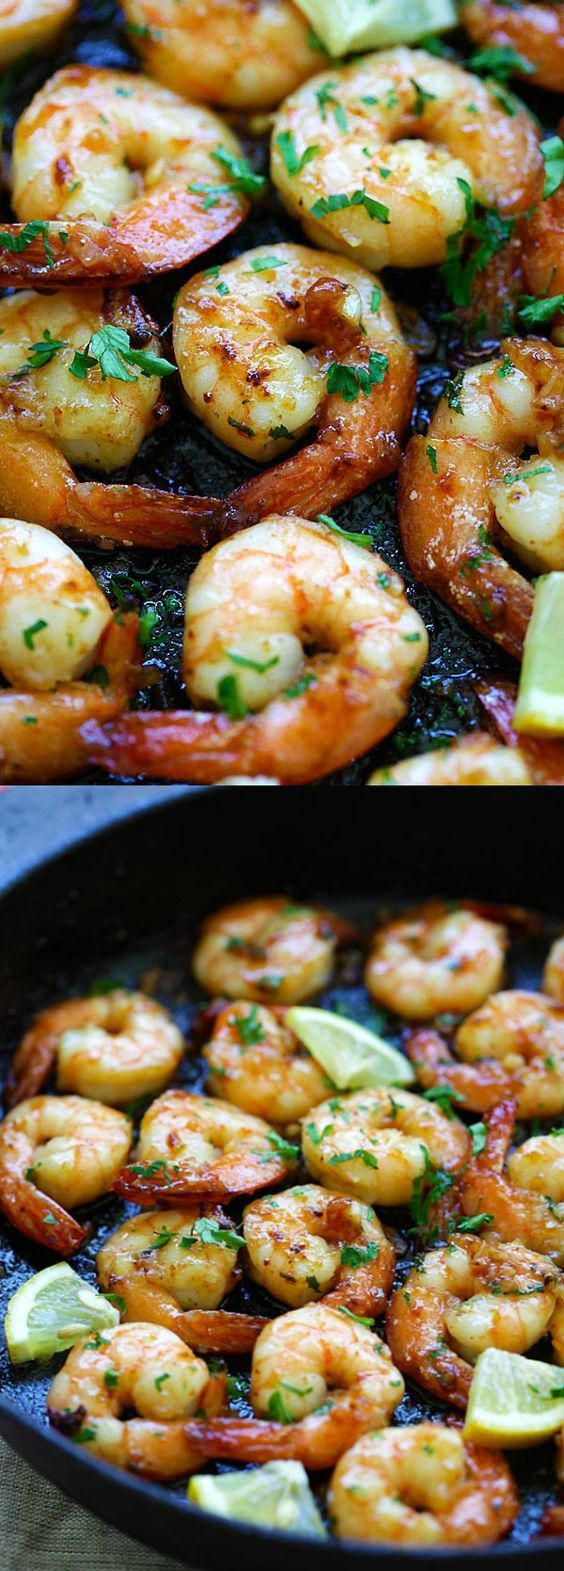 Honey Garlic Shrimp - http://rasamalaysia.com/honey-garlic-shrimp/?utm_source=feedburner&utm_medium=feed&utm_campaign=Feed%3A+rasamalaysia+%28Rasa+Malaysia%3A+Easy+Asian+Recipes%29